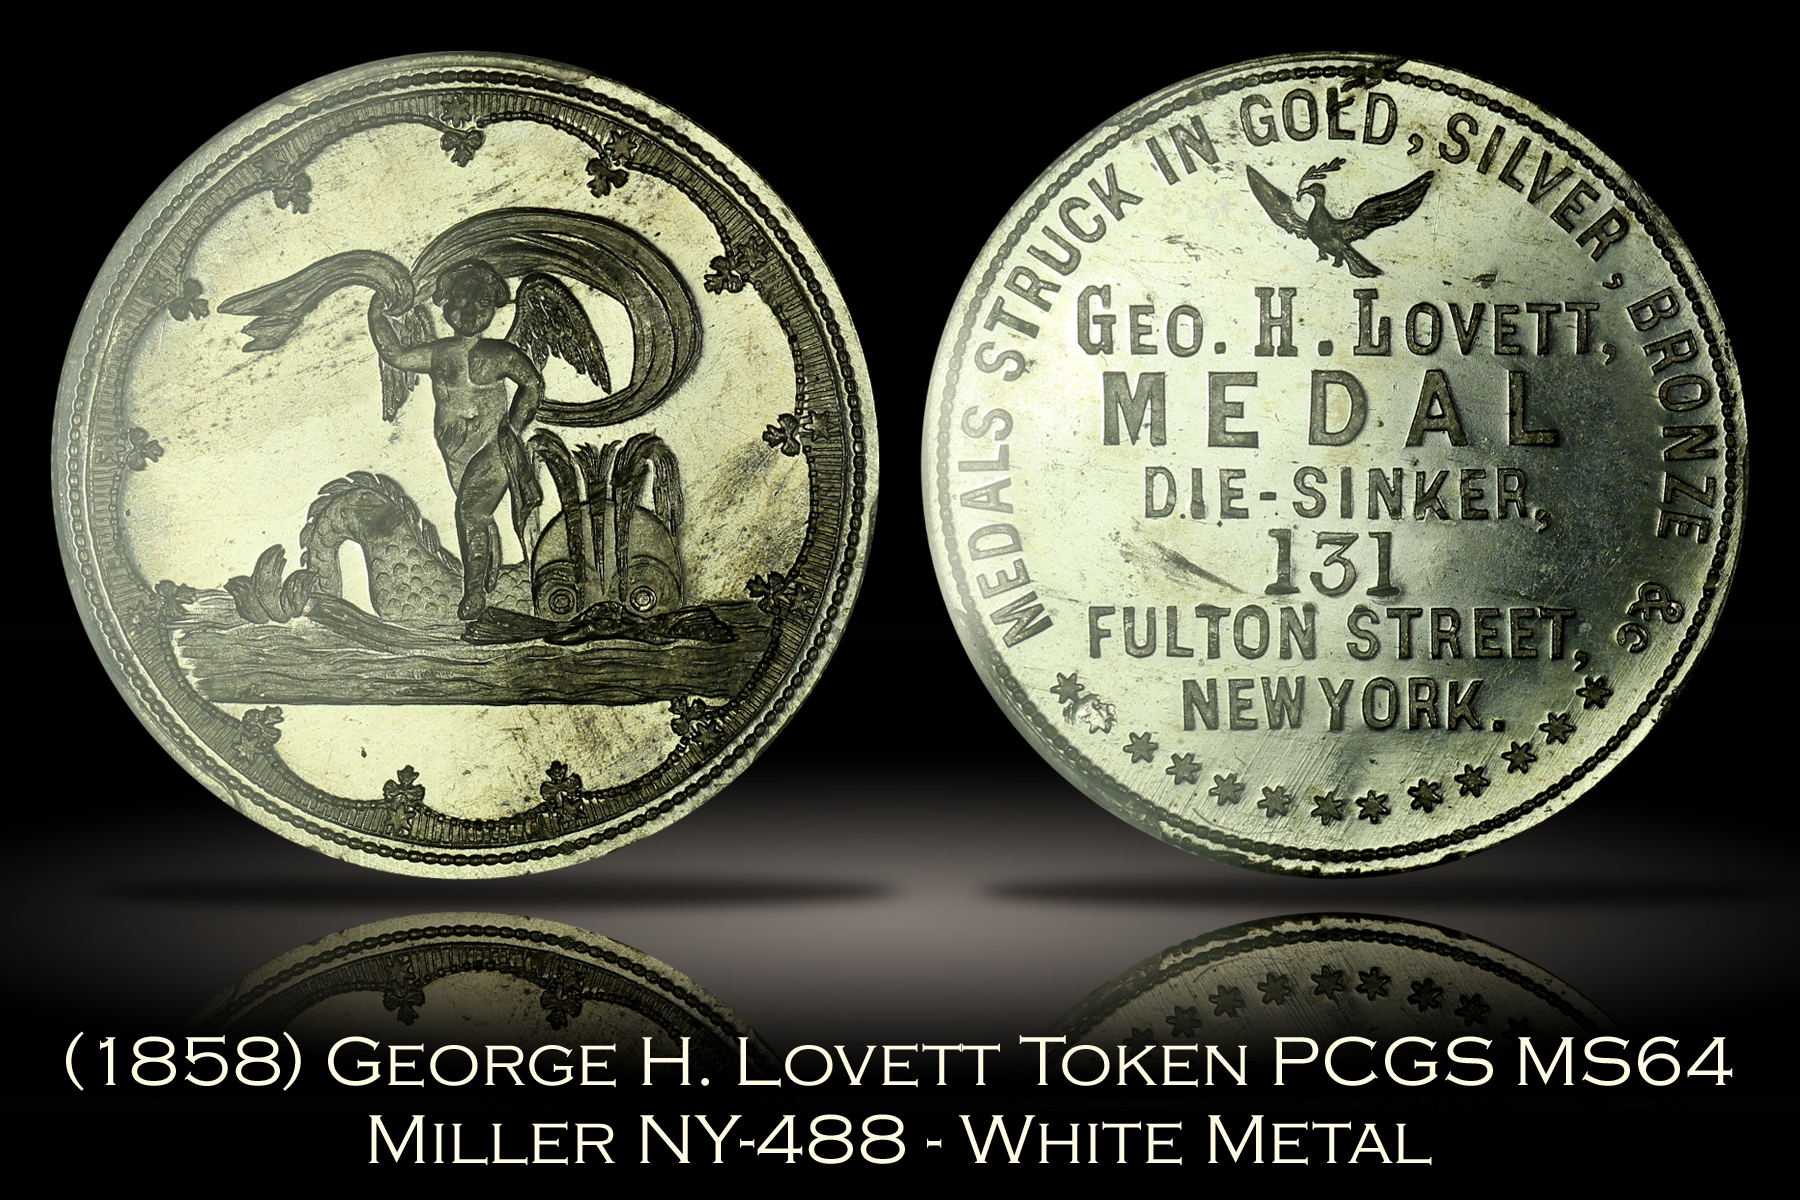 (1858) Lovett Cupid Token Miller NY-488 White Metal PCGS MS64